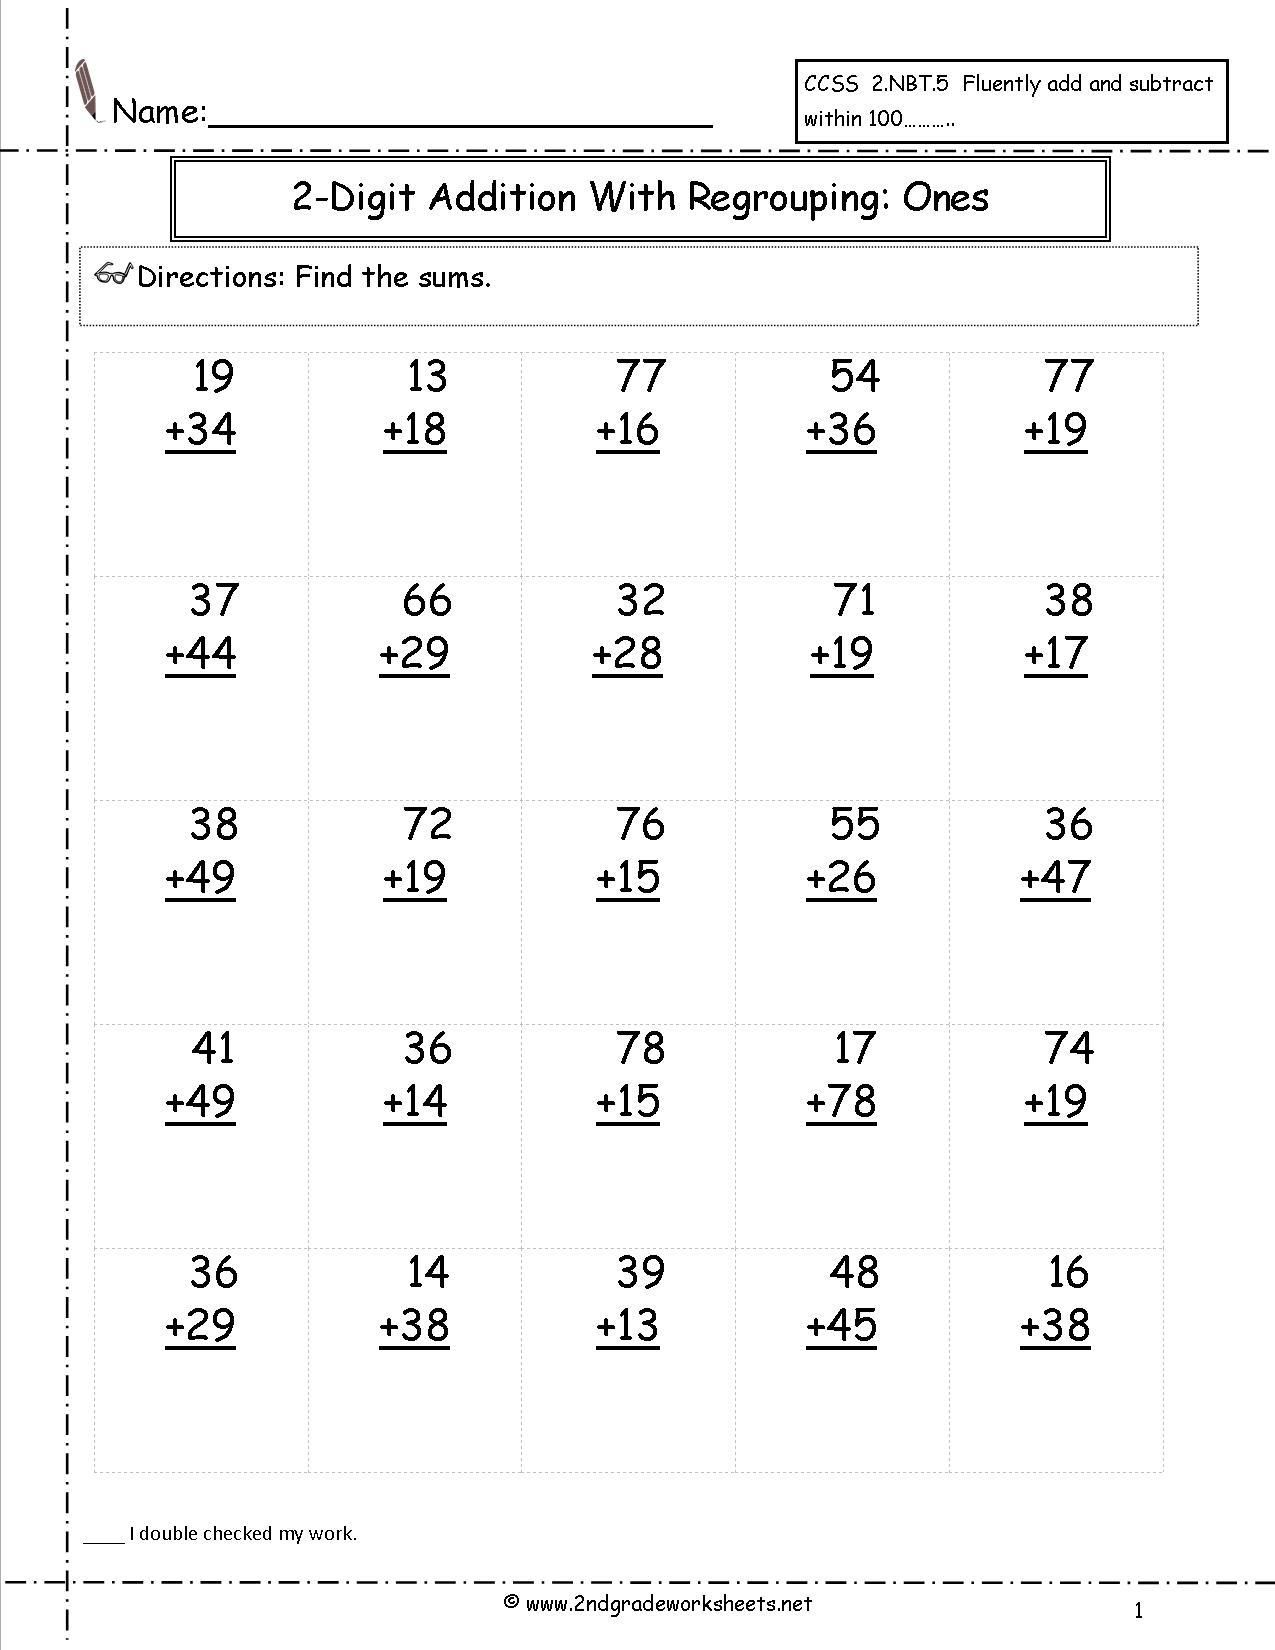 Printable Math Sheets For 2nd Grade In 2020 With Images 2nd